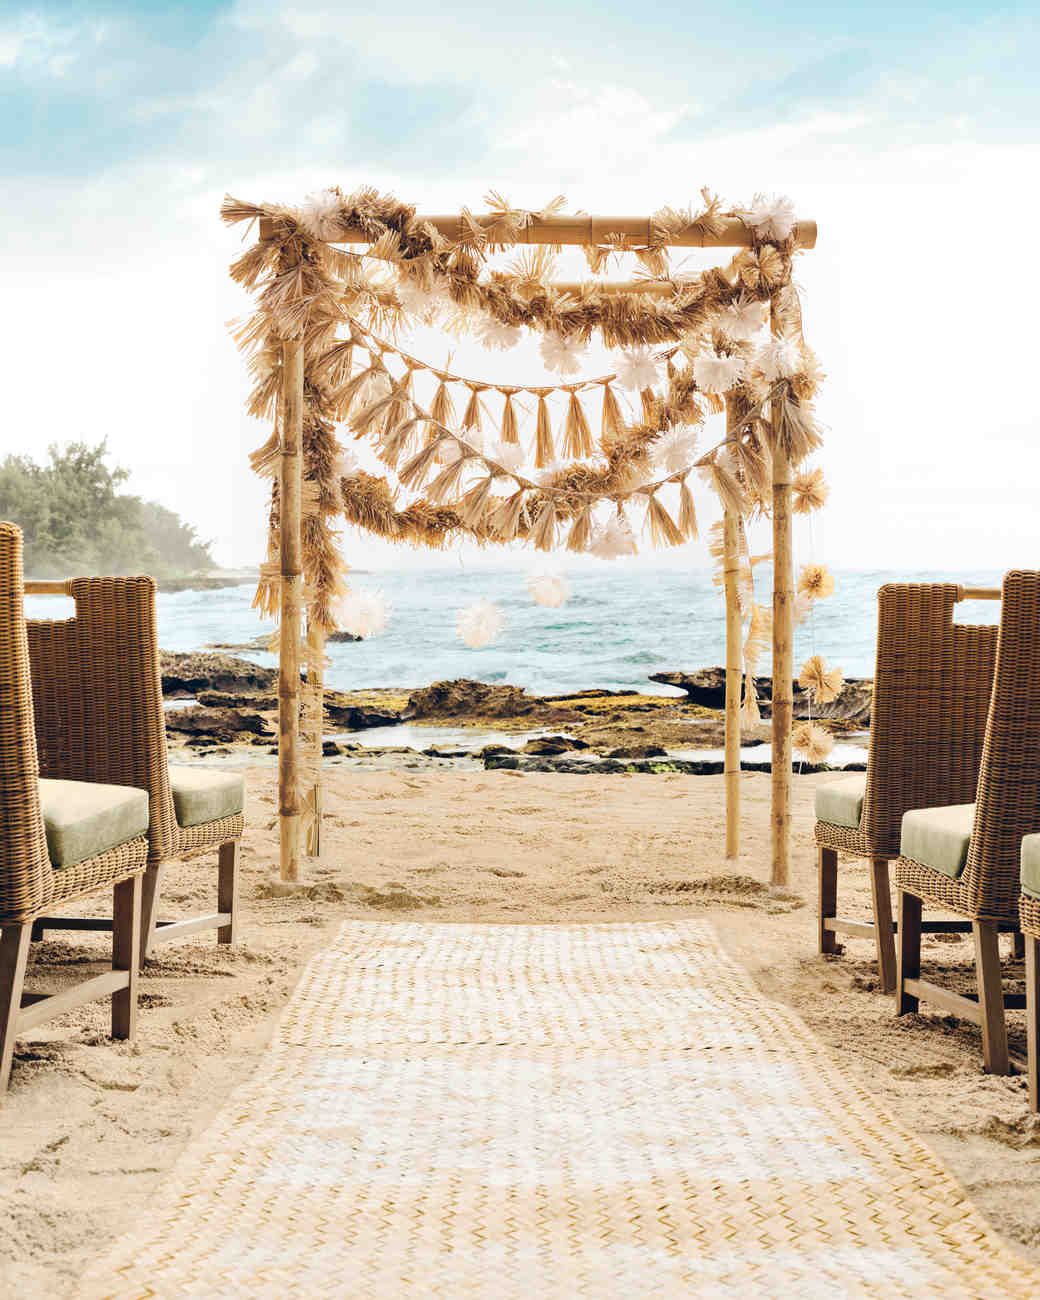 Belongil Beach Wedding Ceremony: 23 Beach Wedding Ideas You Can DIY To Make A Splash At